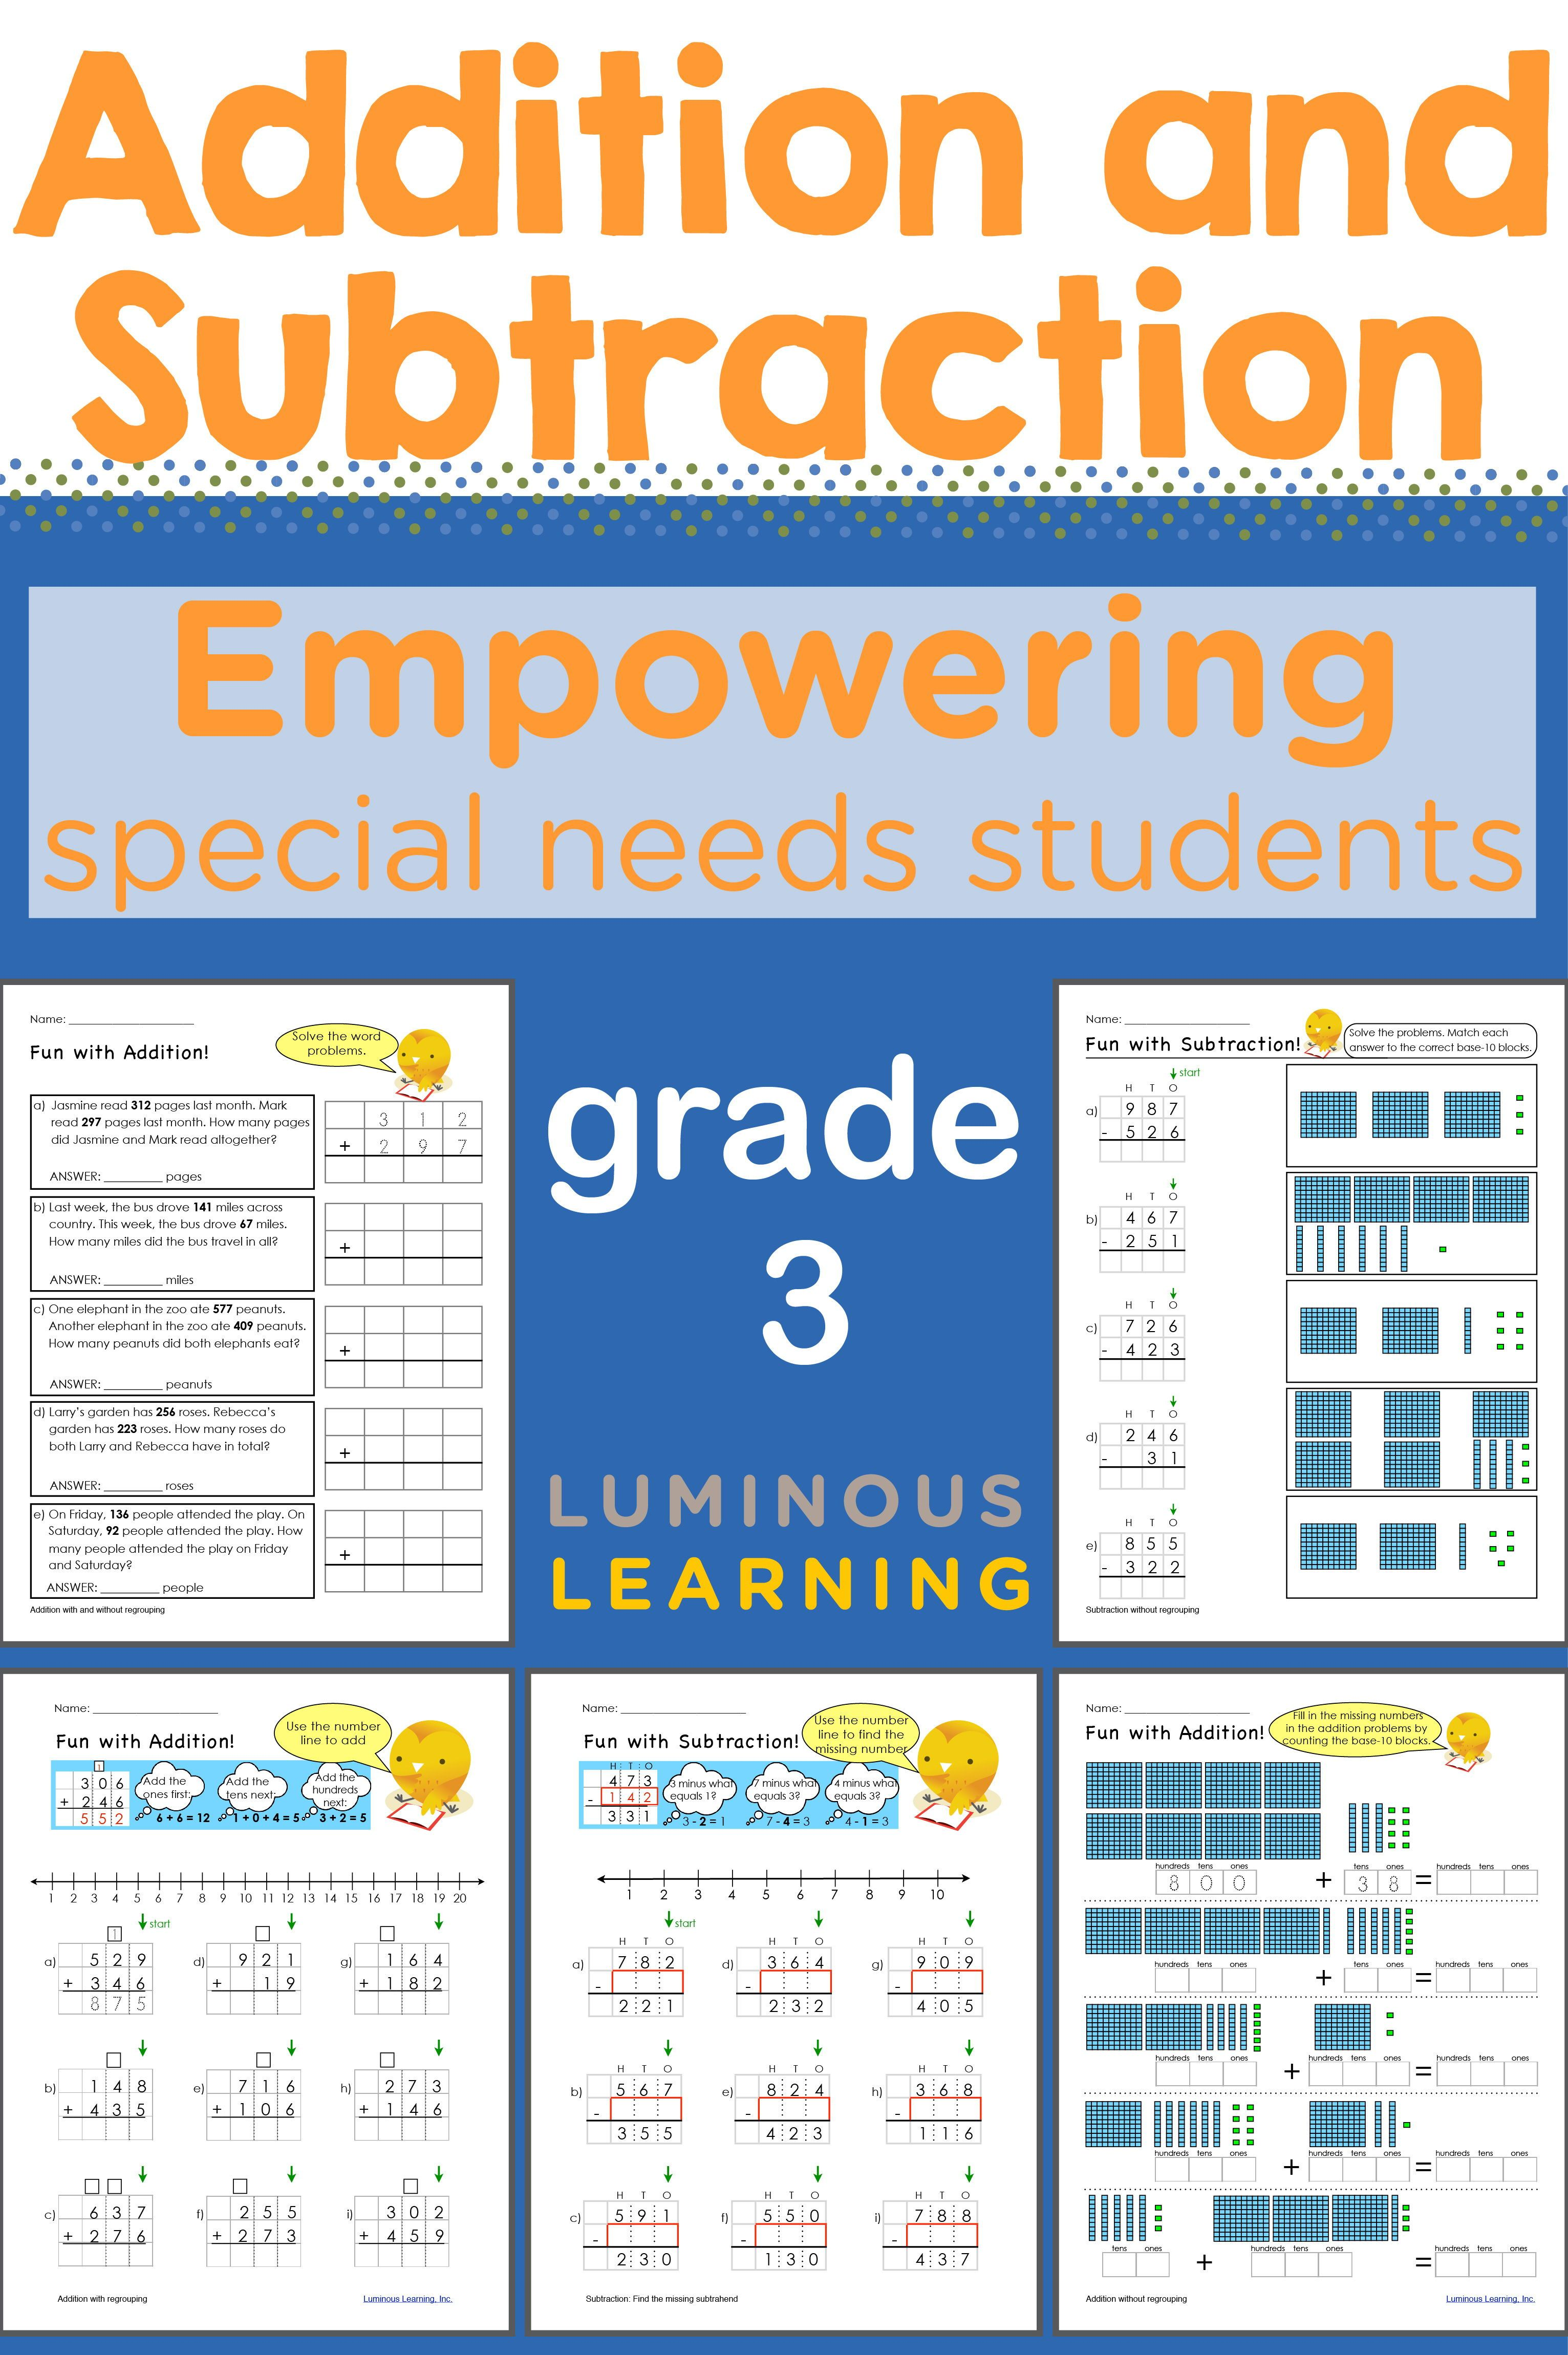 Grade 3 Addition And Subtraction Workbook In 2020 Addition And Subtraction Worksheets Addition And Subtraction Upper Elementary Math [ 4600 x 3063 Pixel ]